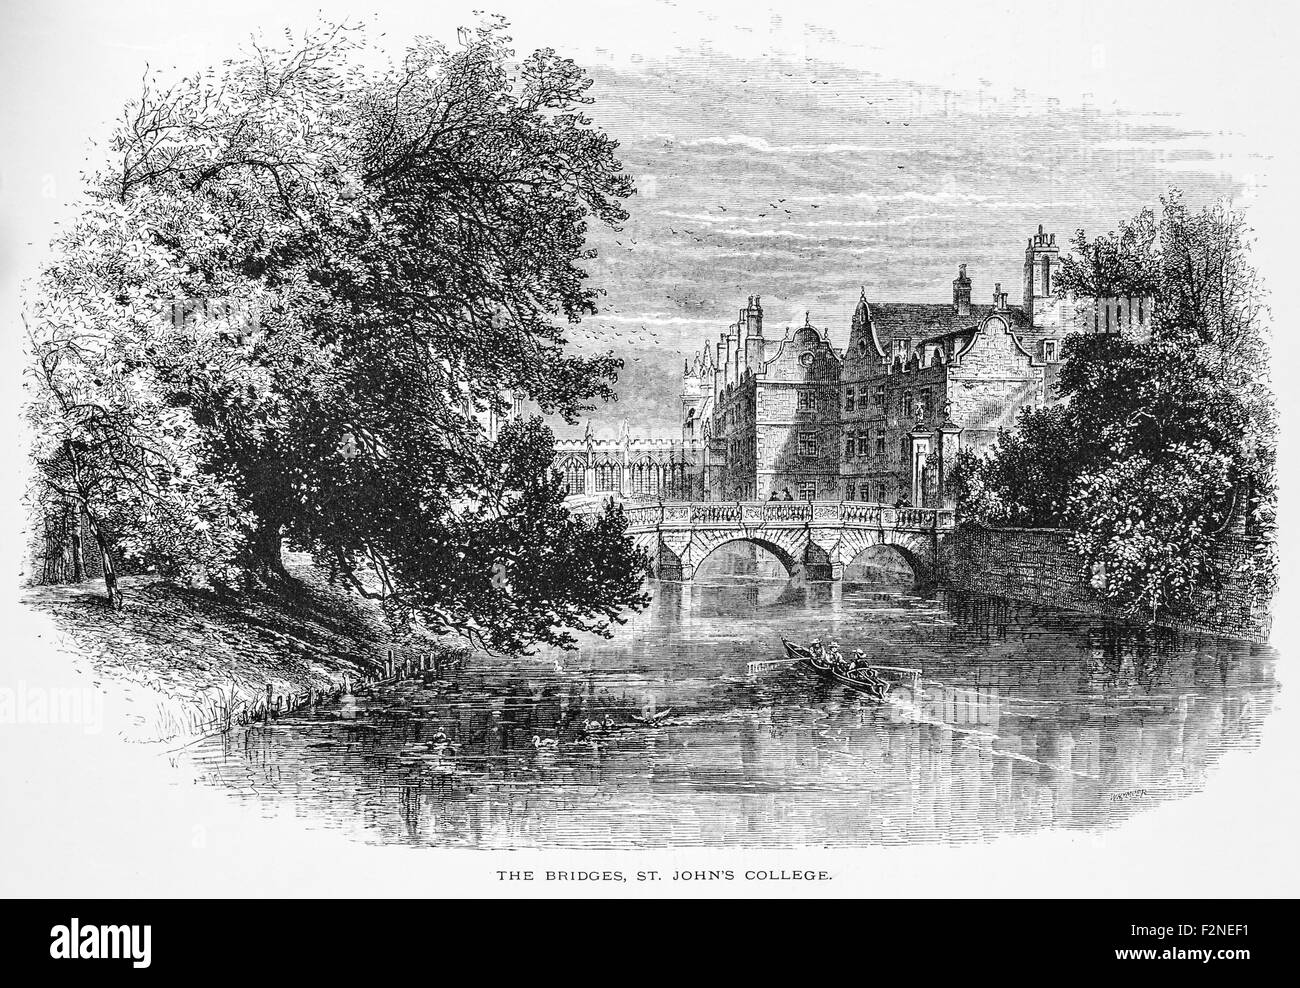 The Bridge, St John's College, Cambridge_Illustration from 'The British isles - Cassell Petter & Galpin - Stock Image